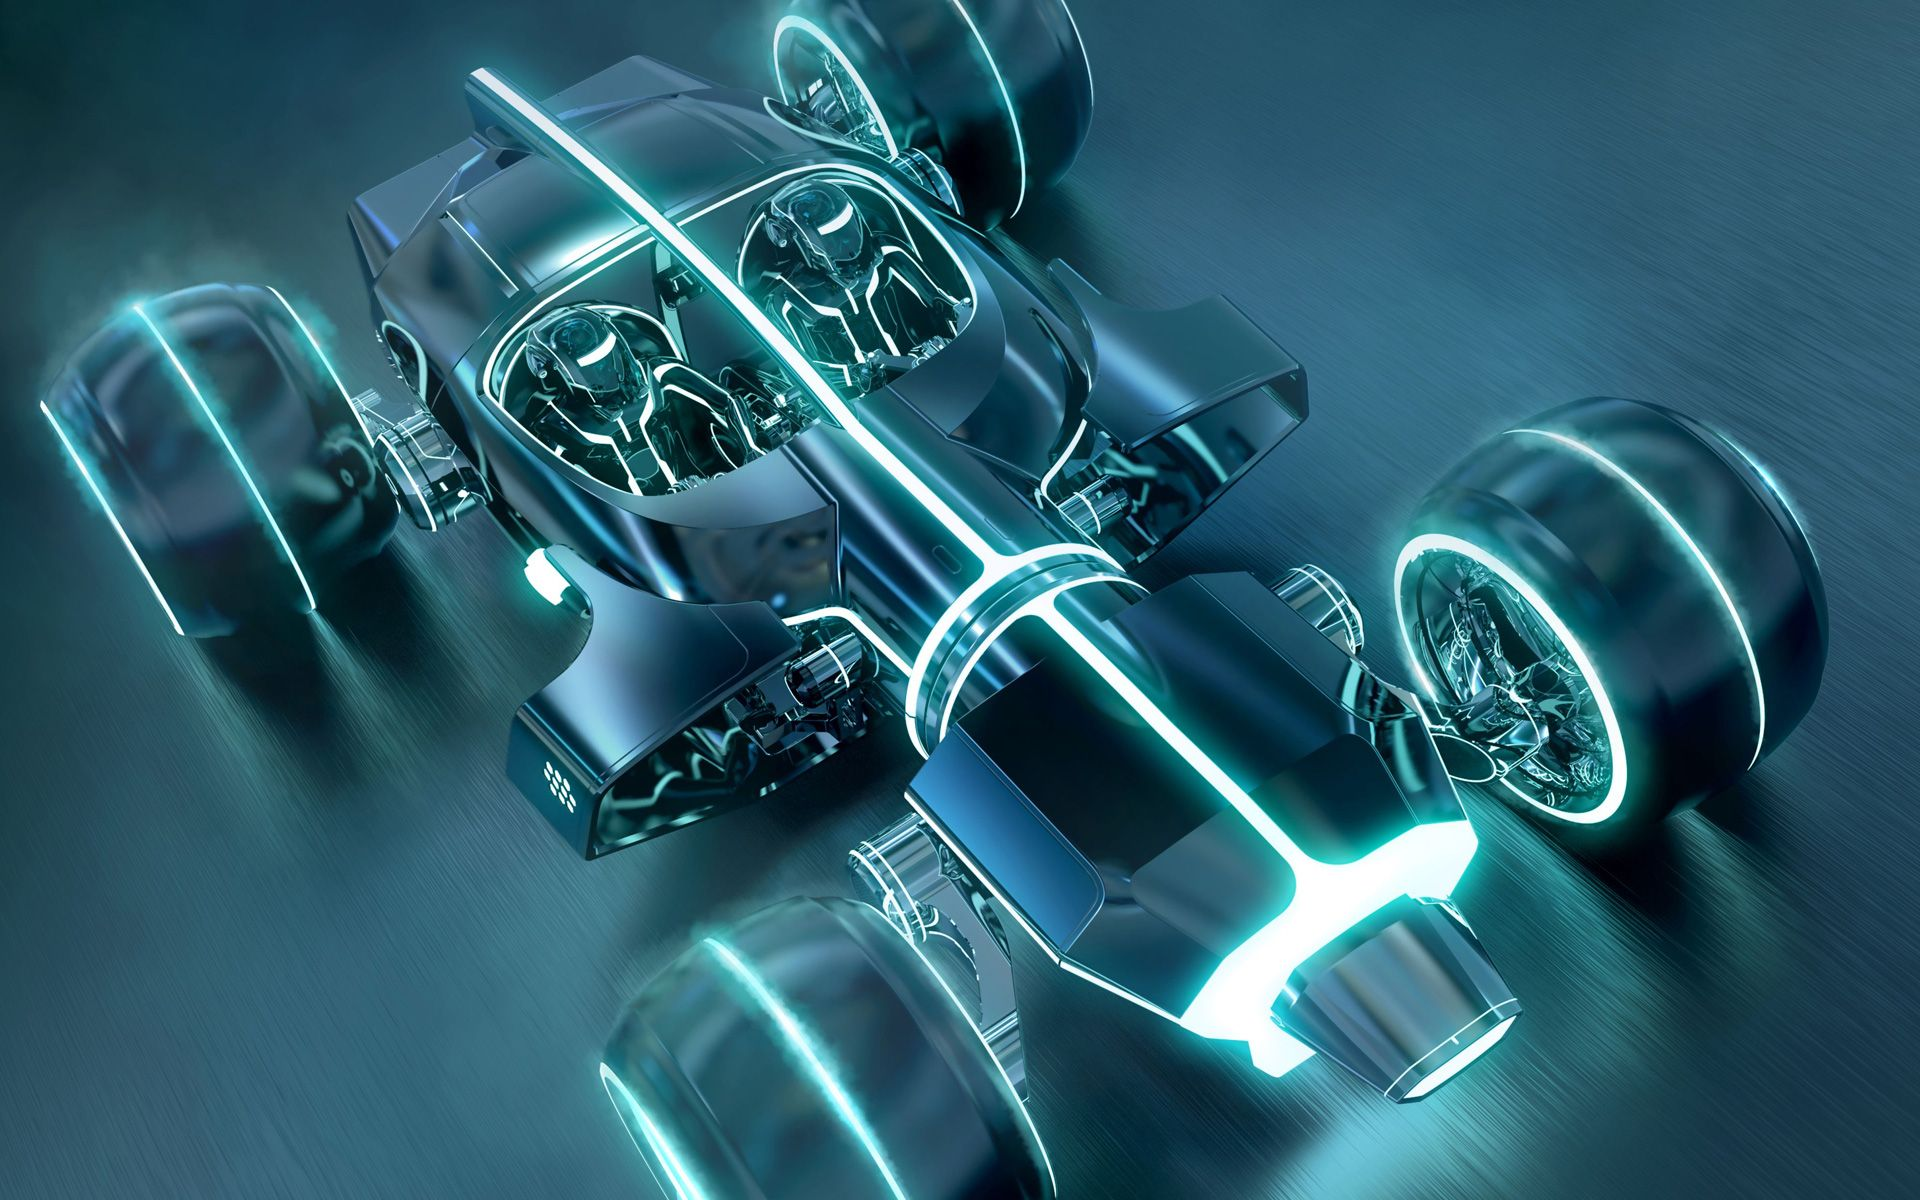 Find Out Tron Legacy Light Car Wallpaper On Hdpicorner